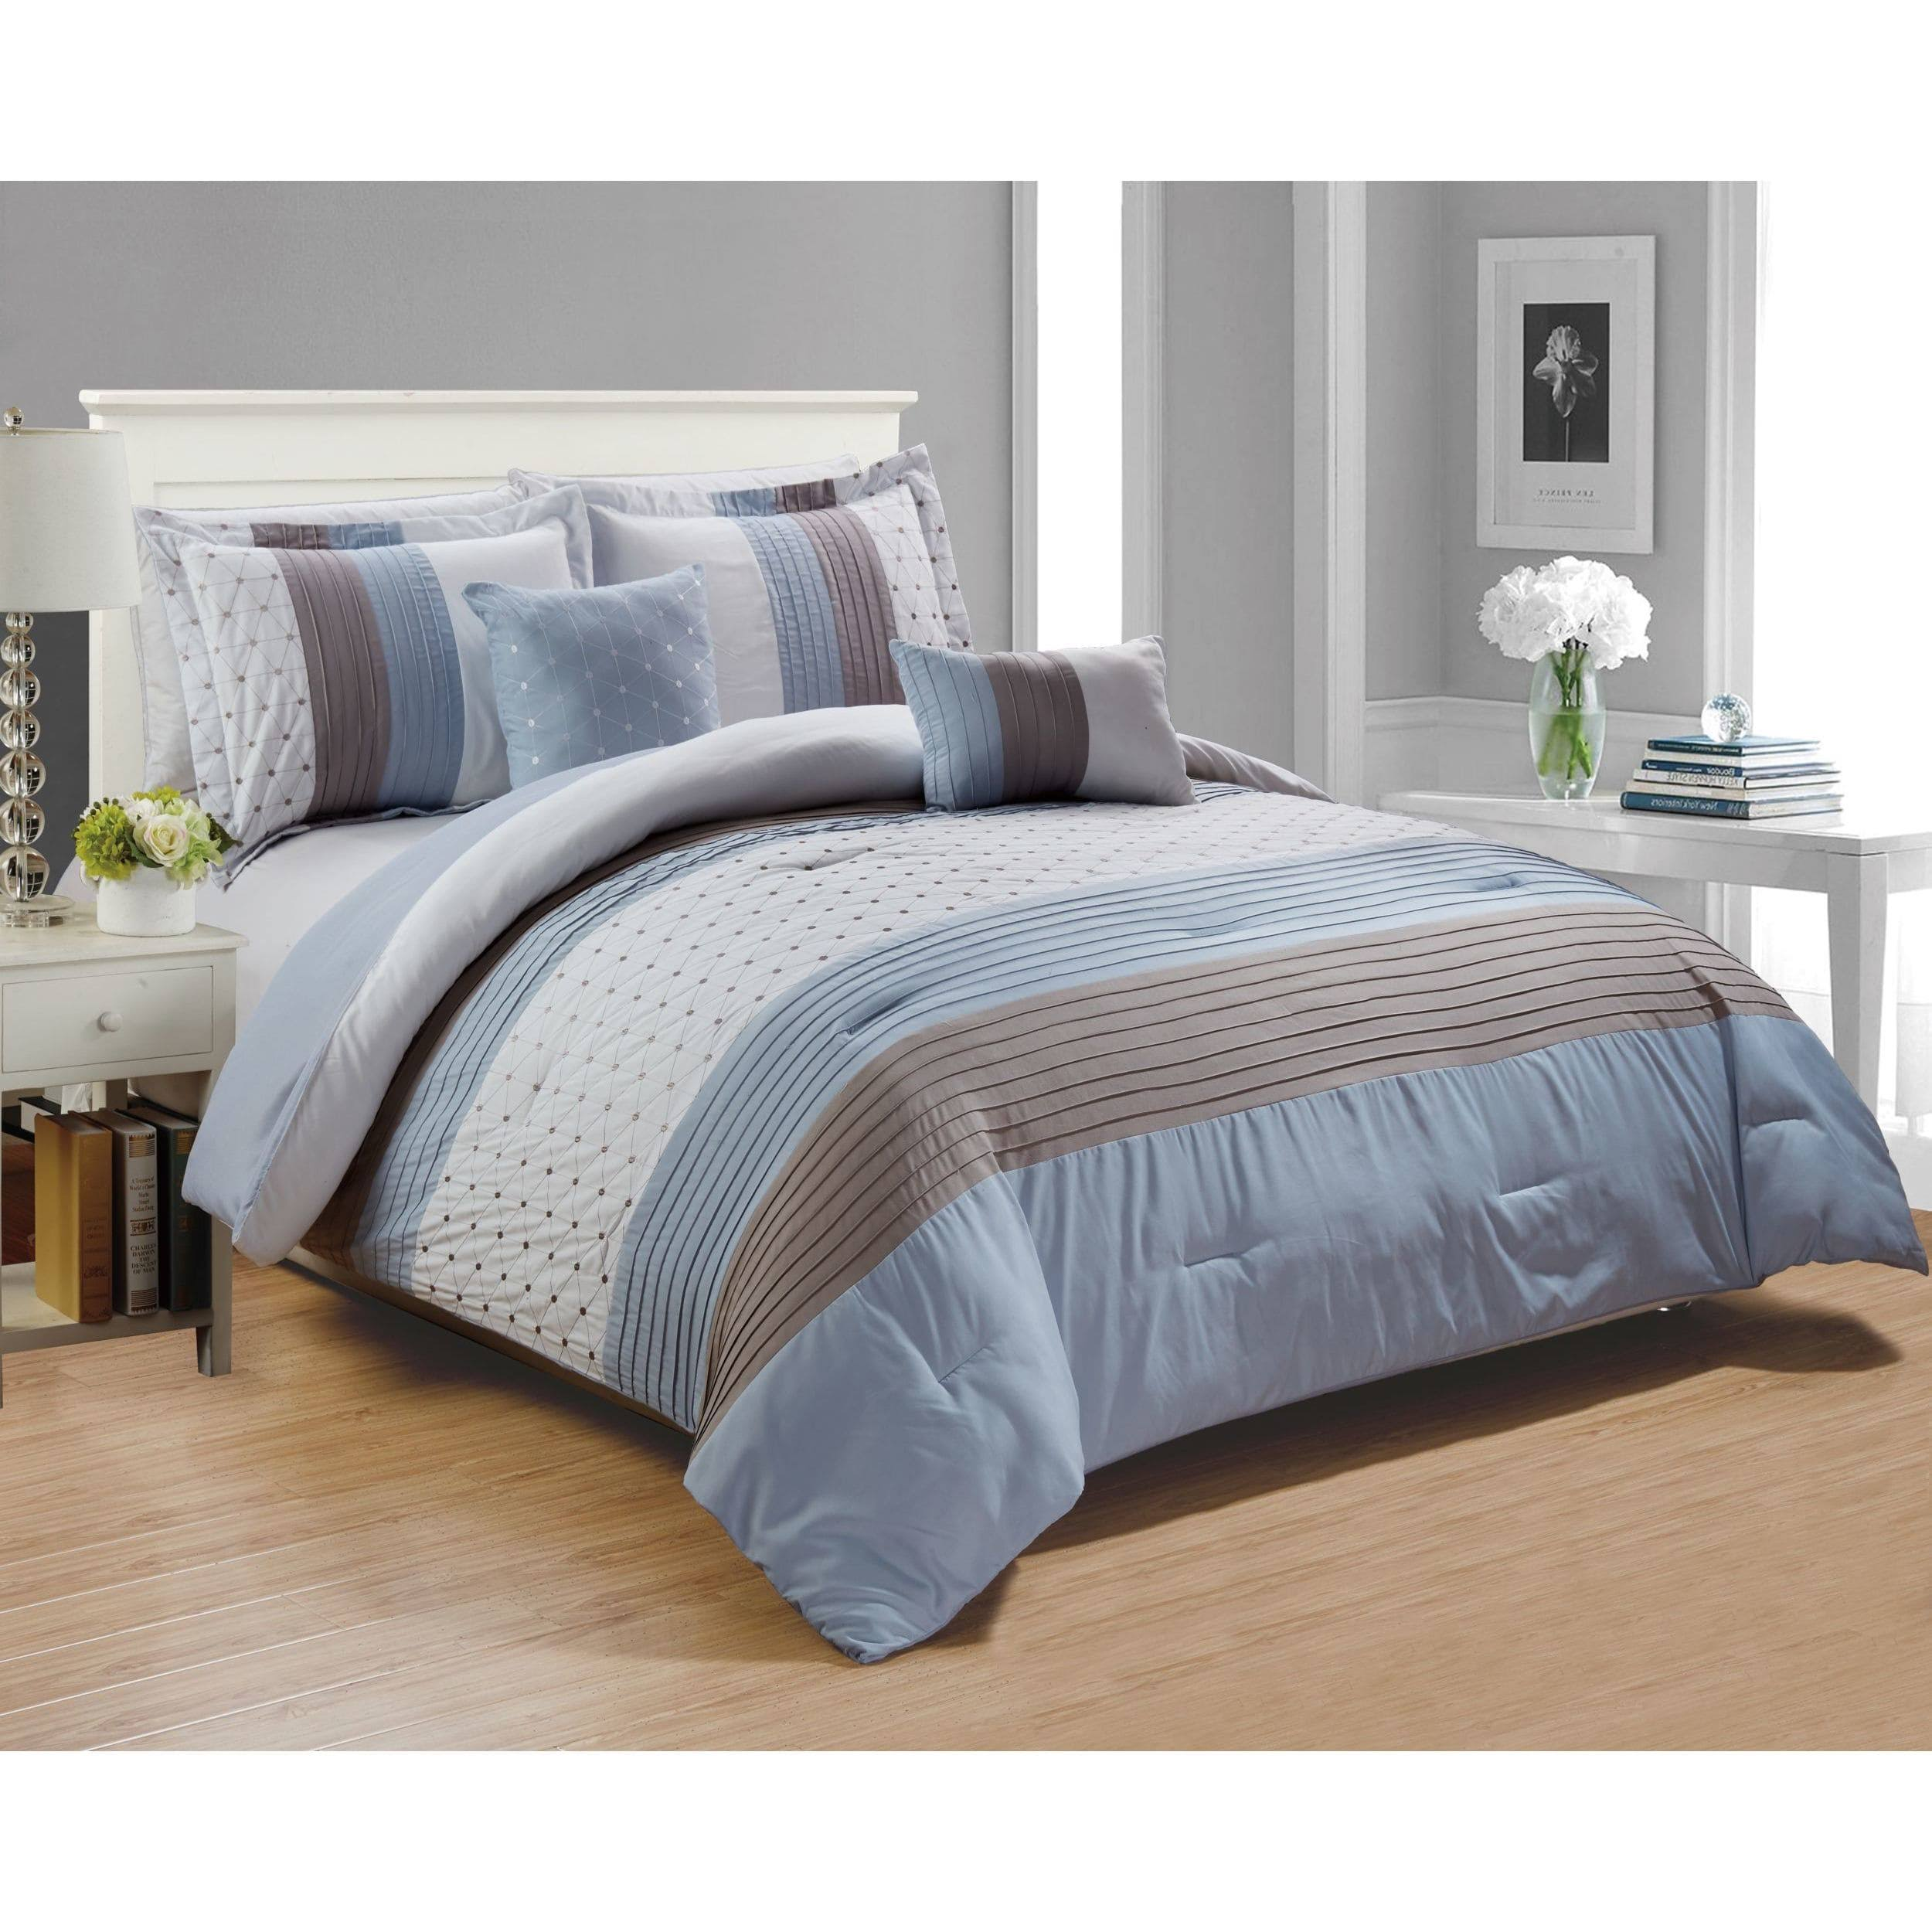 RT Designers Collection Westfield Embroidered 5 Piece Comforter Set, Queen